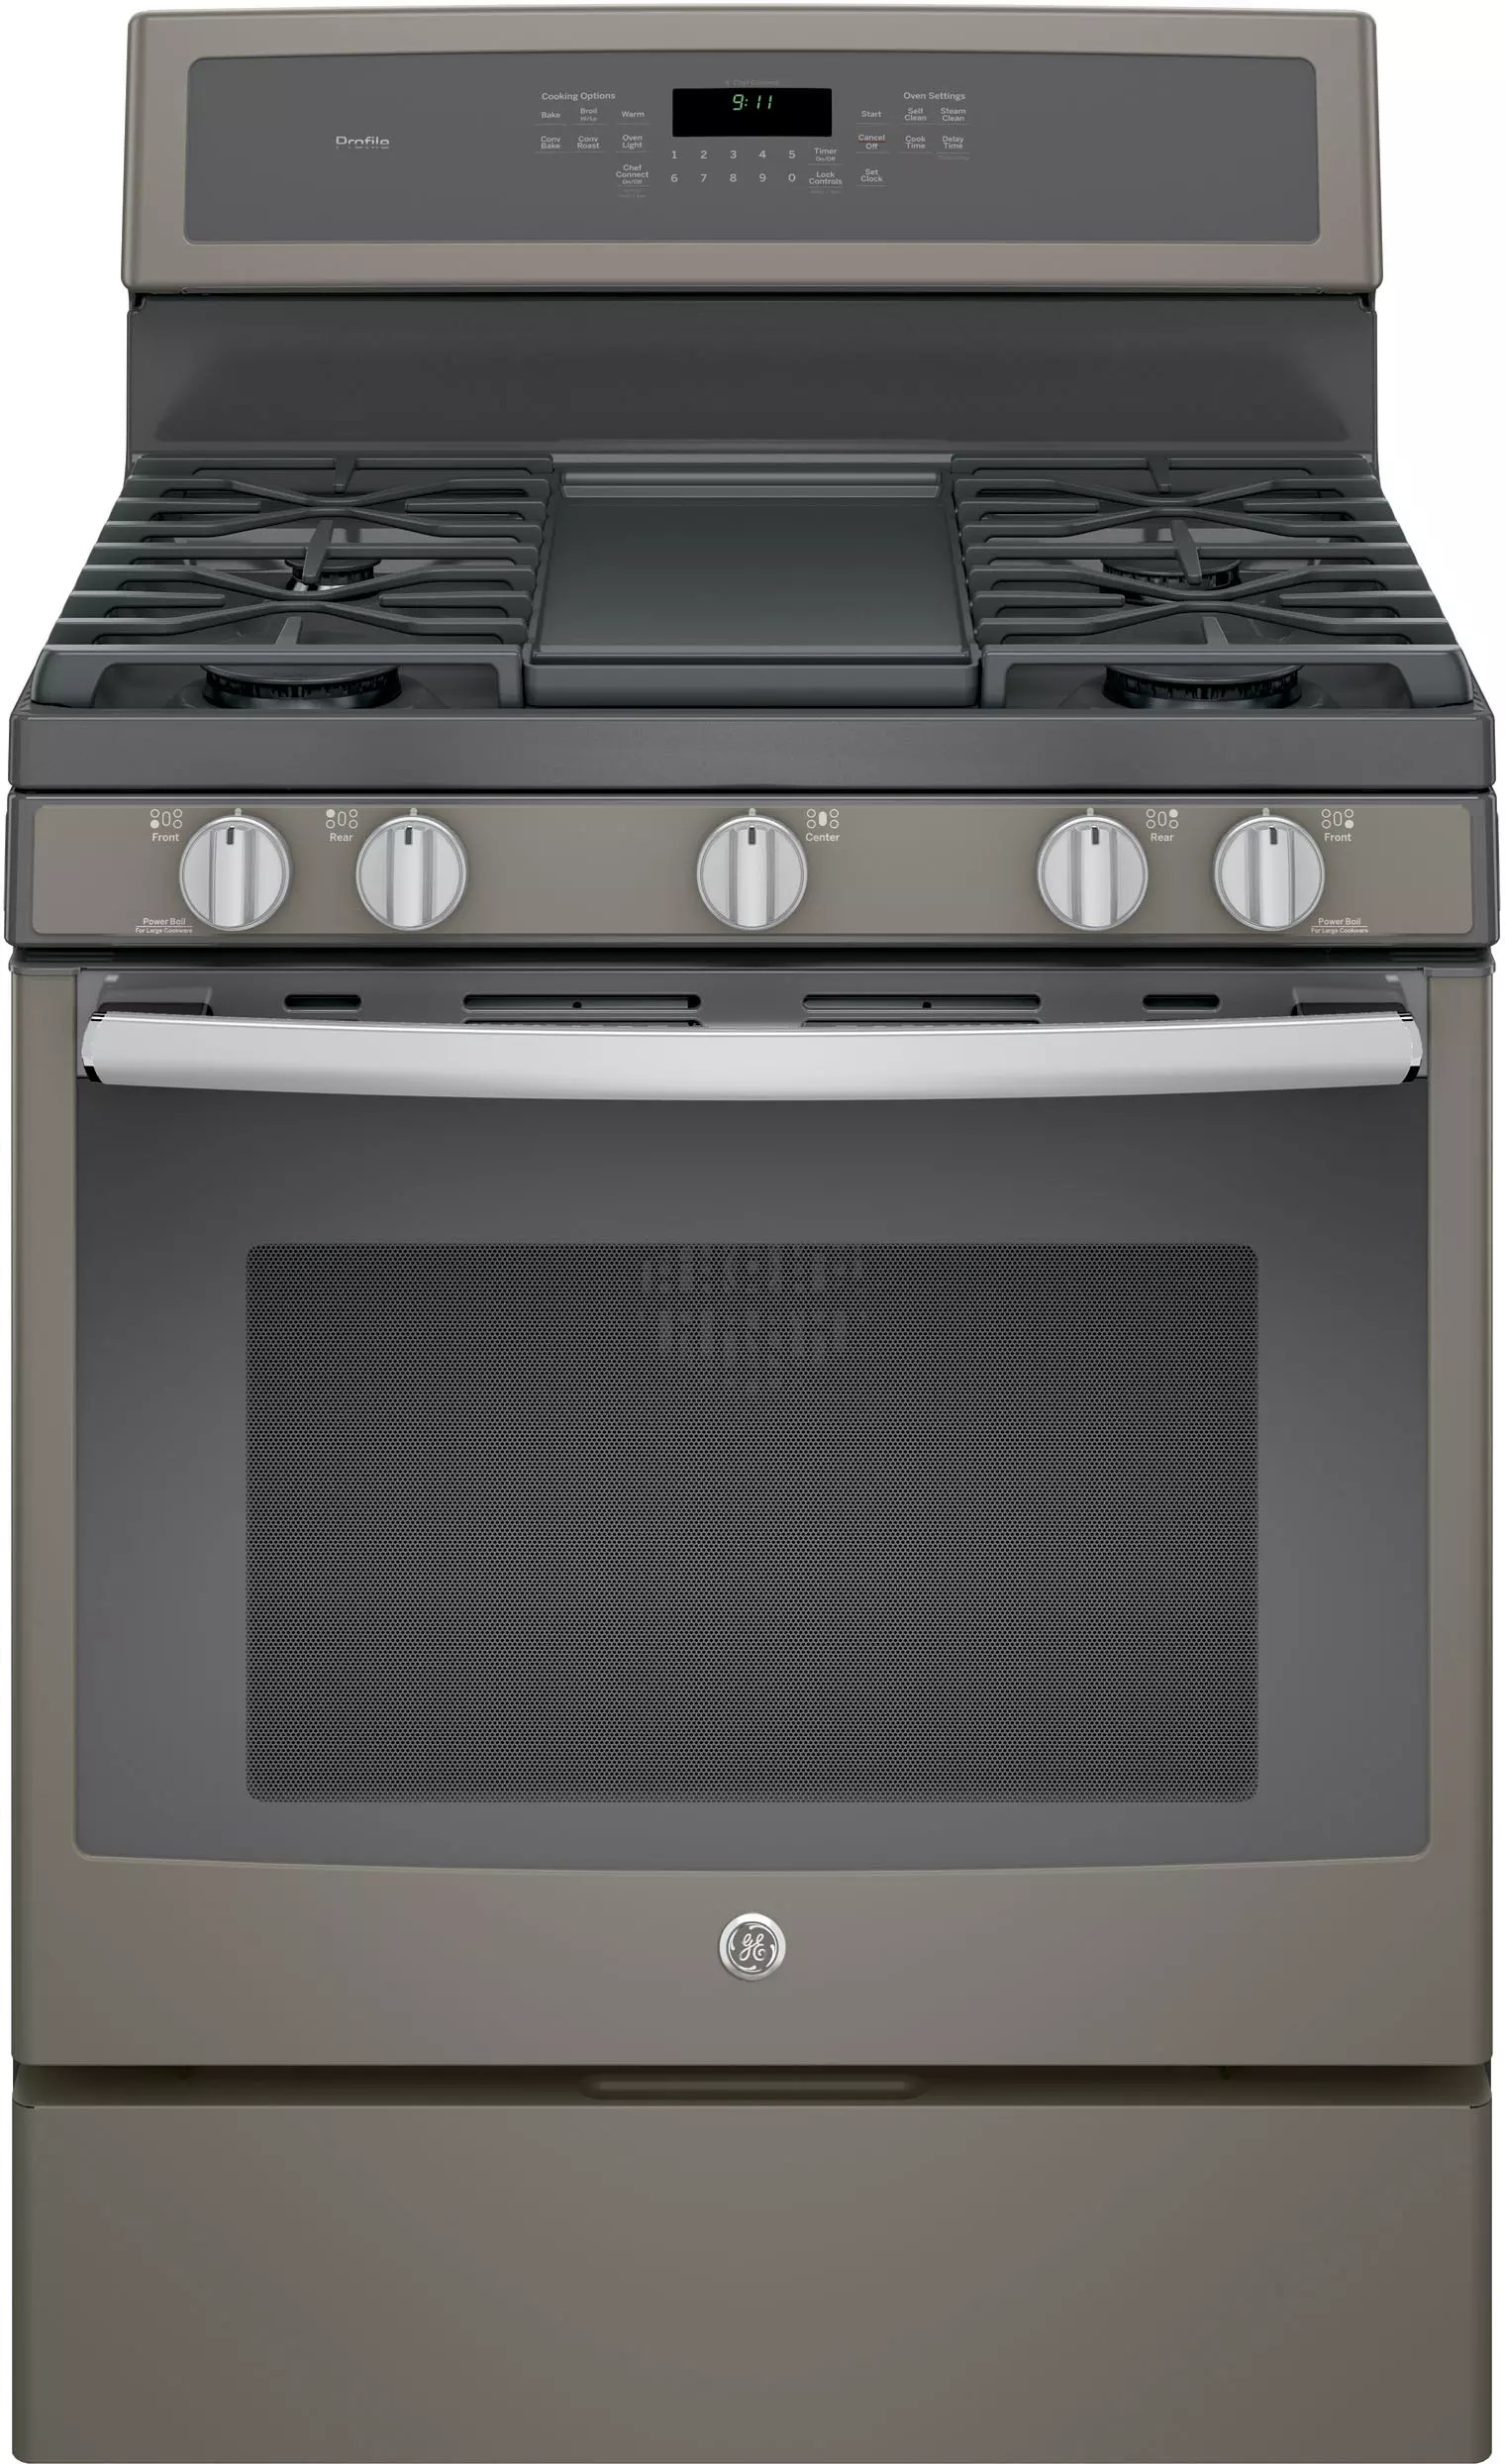 Cooktop Gas Stoves Ge Parts Wb49xpr05b Basic Cooktop Kit For Ge Profile Gas